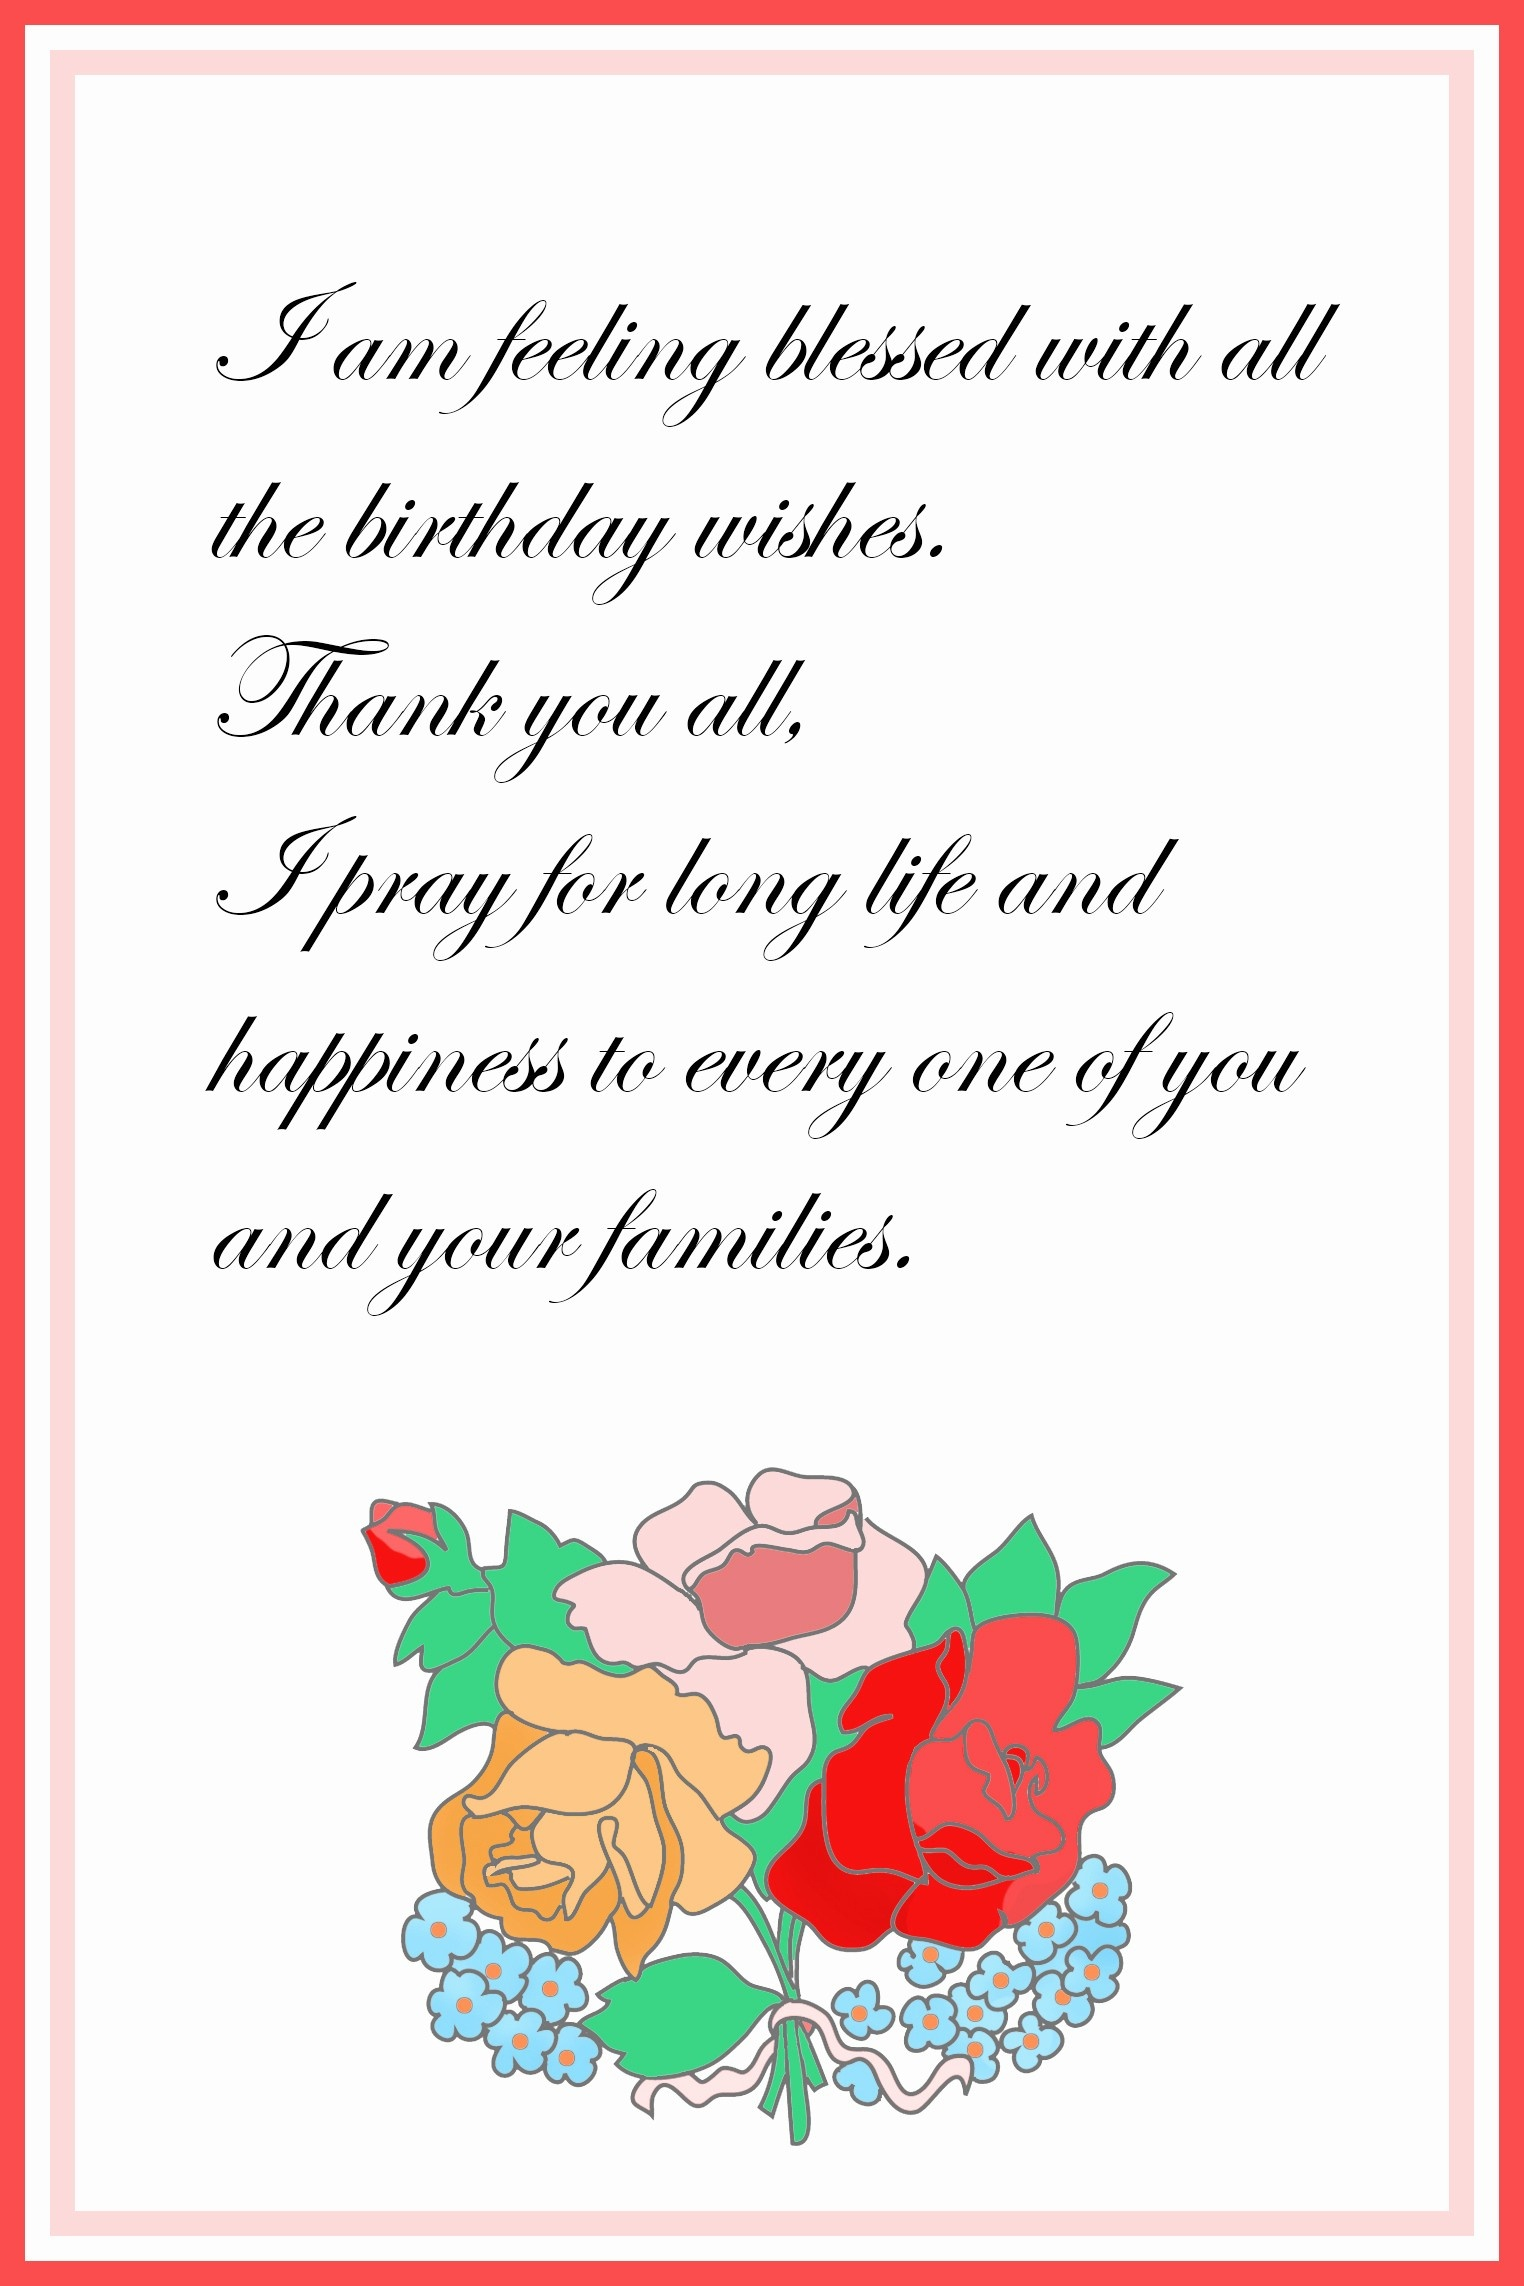 021 Hallmark Thank You Card Template Awesome Printable Free Birthday - Free Printable Hallmark Birthday Cards